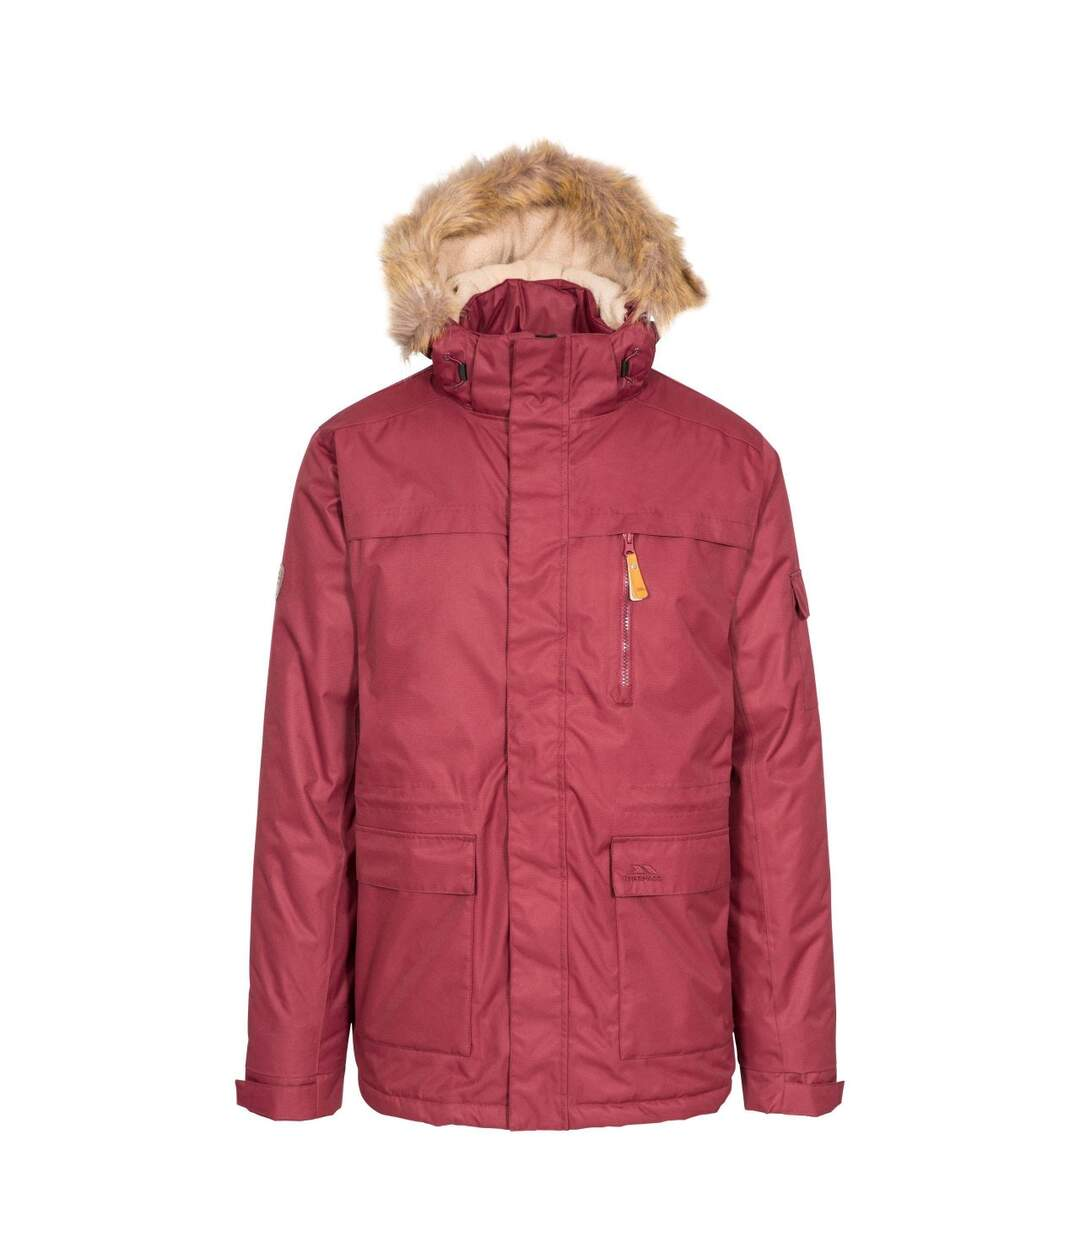 Trespass Mens Mount Bear Parka Jacket (Prune) - UTTP4513